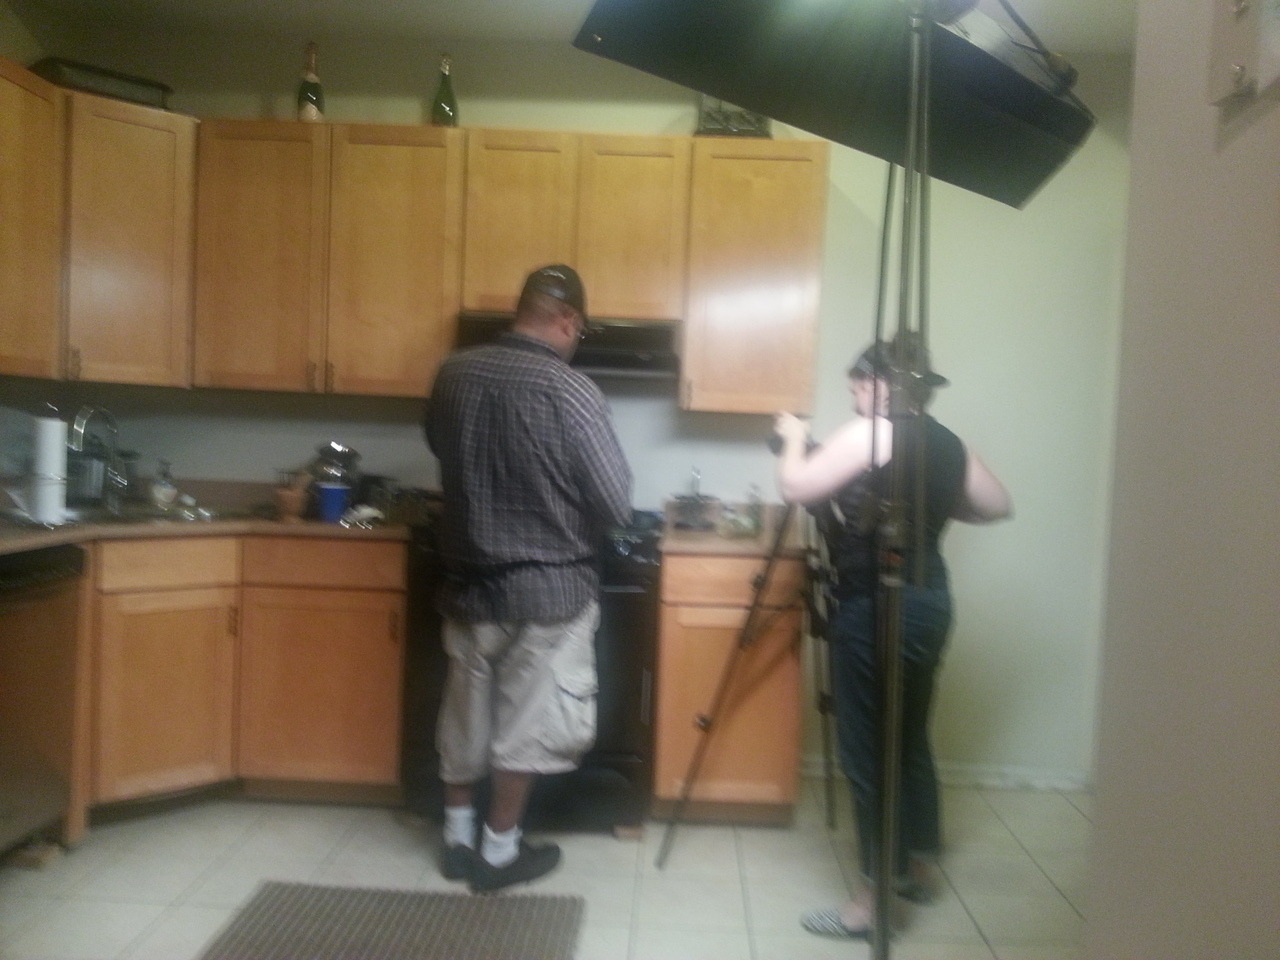 On set for our brand new music video.  One of our actors, Mr. Pippen, cooks up trouble alongside our director of photography/editor Jayme Joyce.  All of the lights.  All of the lights.